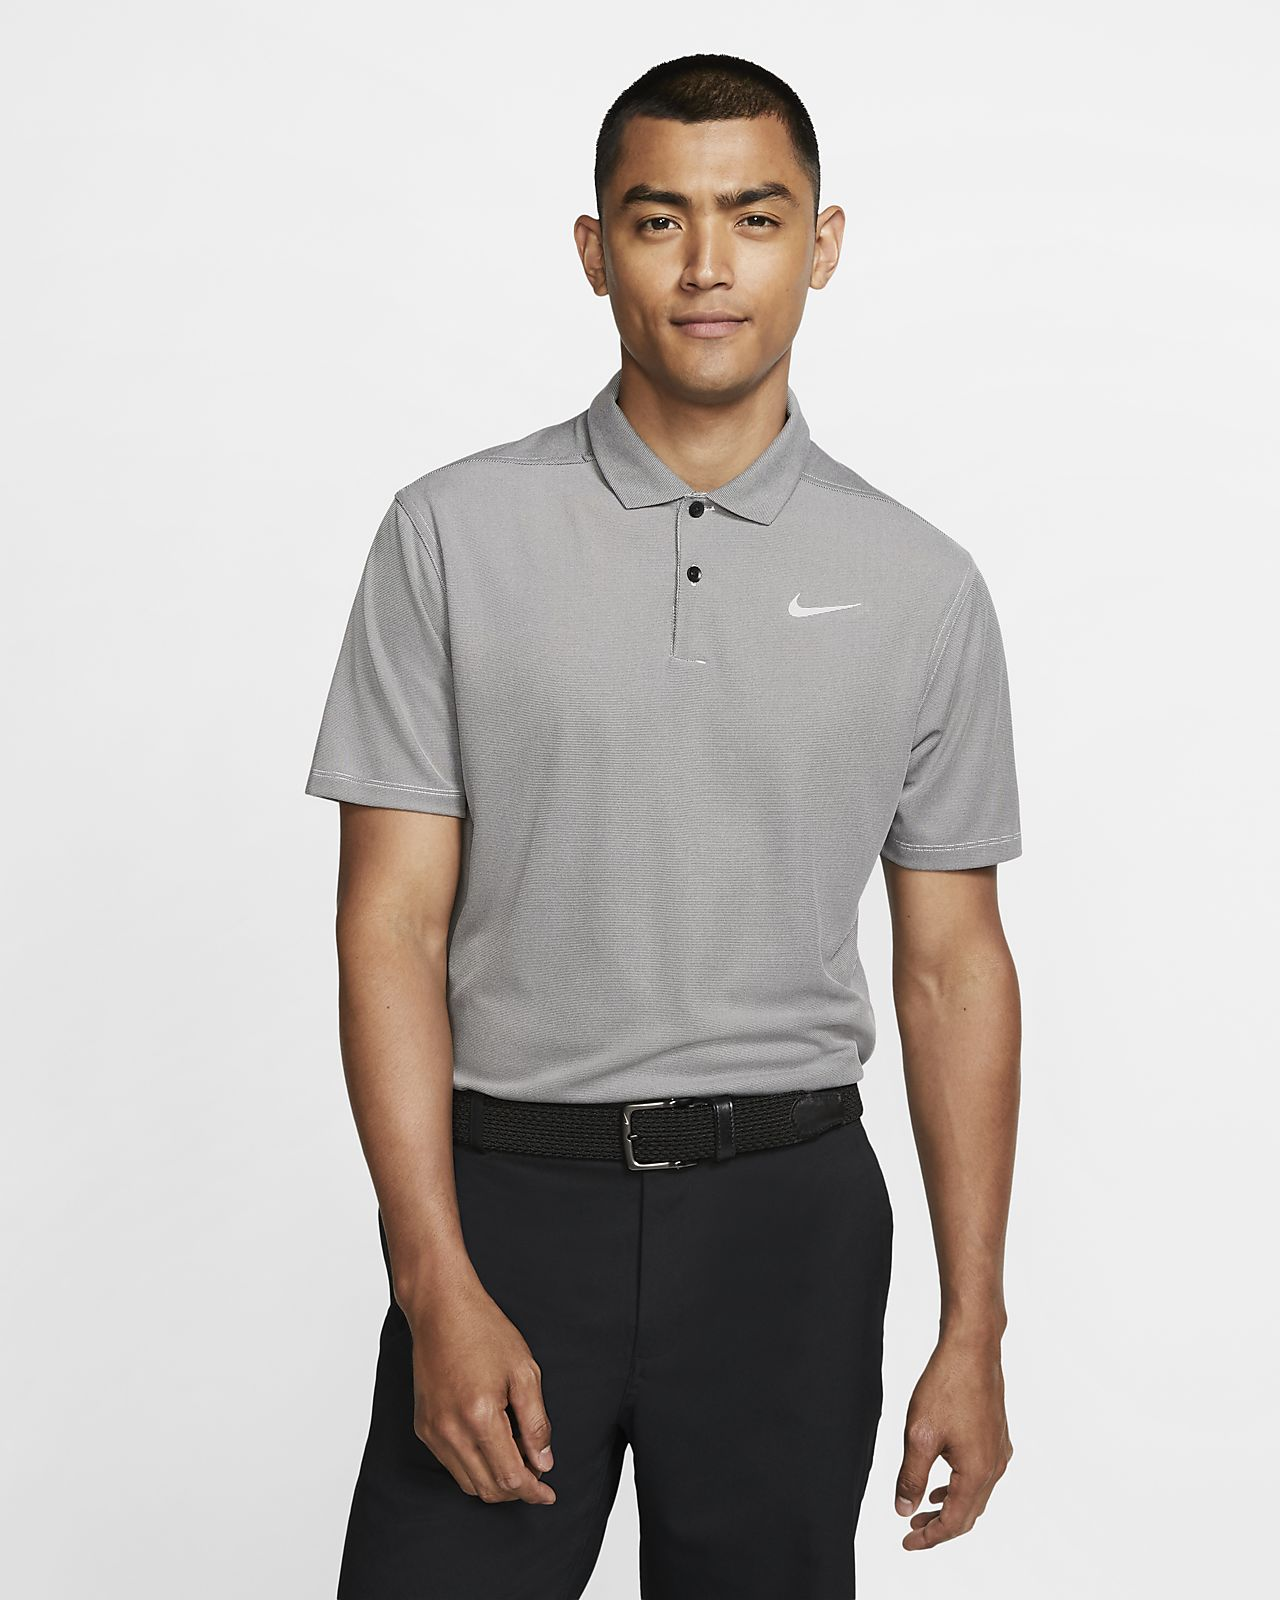 99a1dd843 Nike Dri-FIT Victory Men's Golf Polo. Nike.com